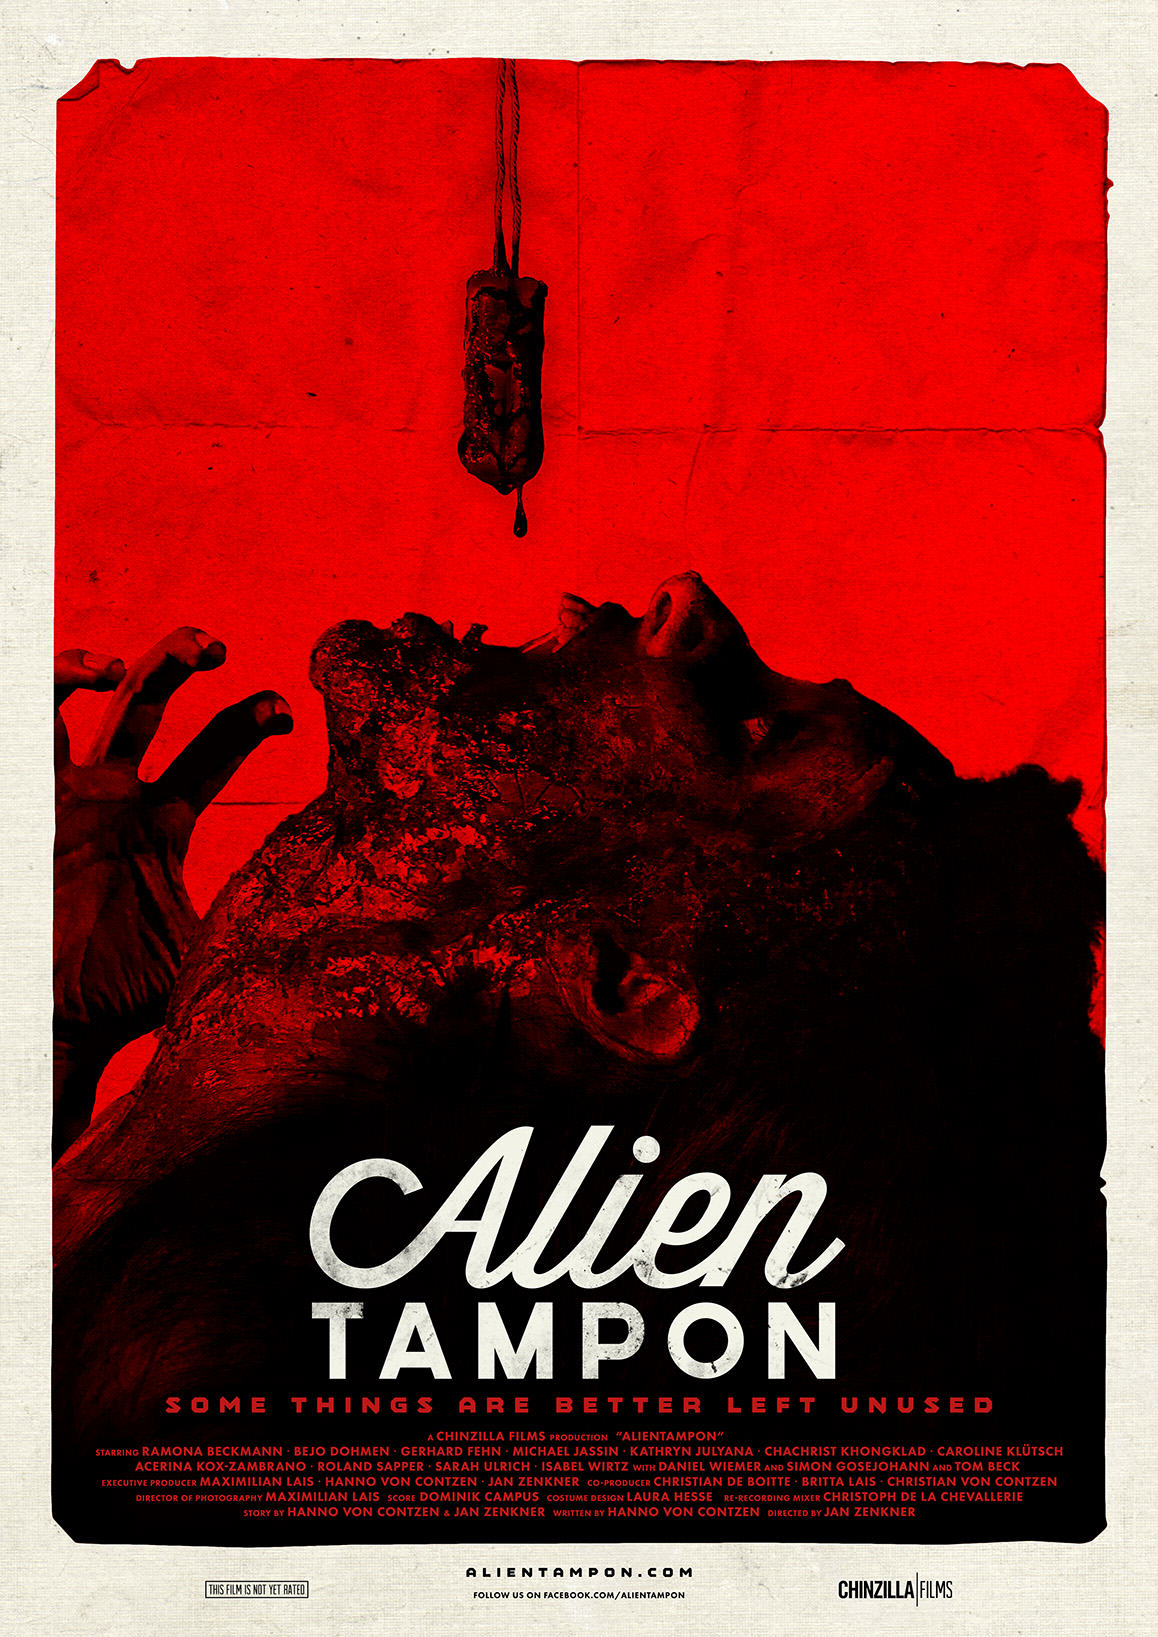 Somebody Wants To Make The Film Alien Tampon, And We Want To Watch It alientampon poster red